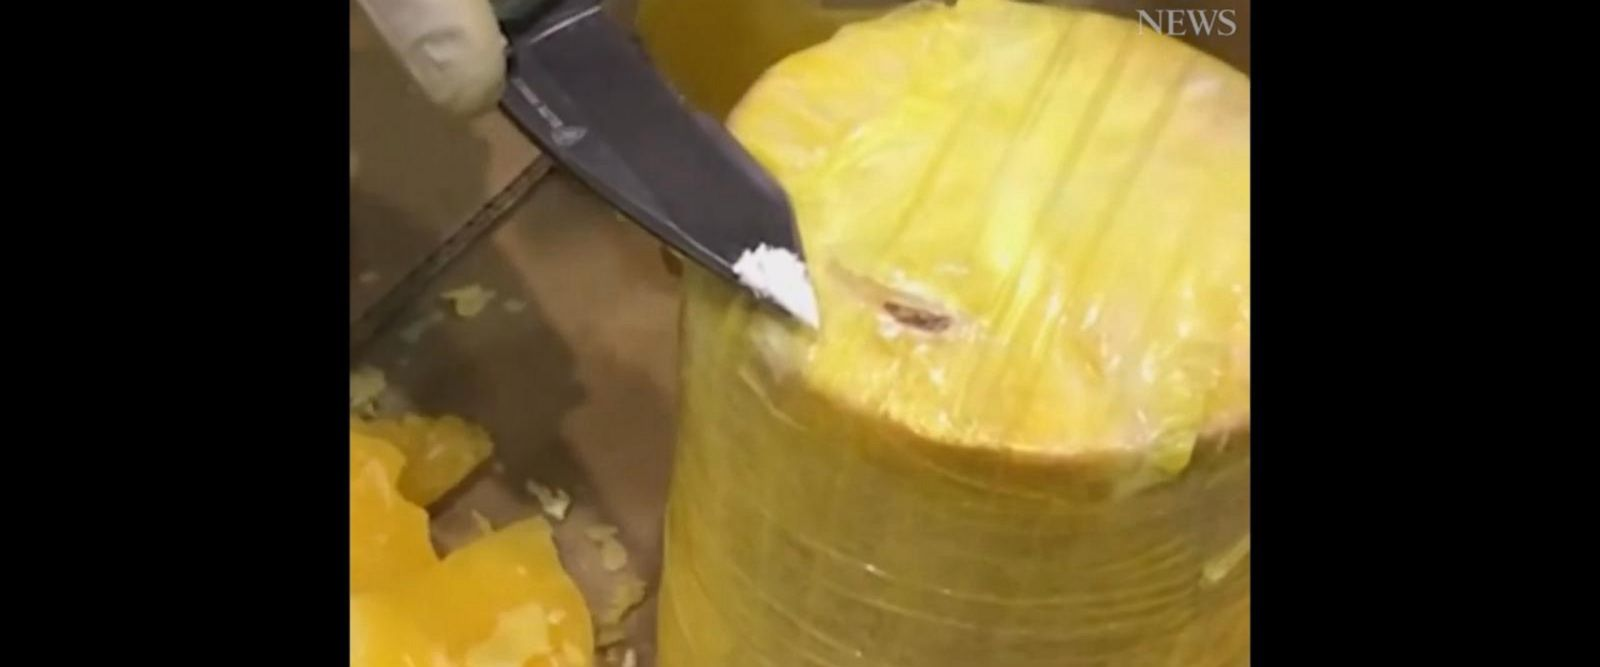 VIDEO: Police seize cocaine found hidden in pineapples